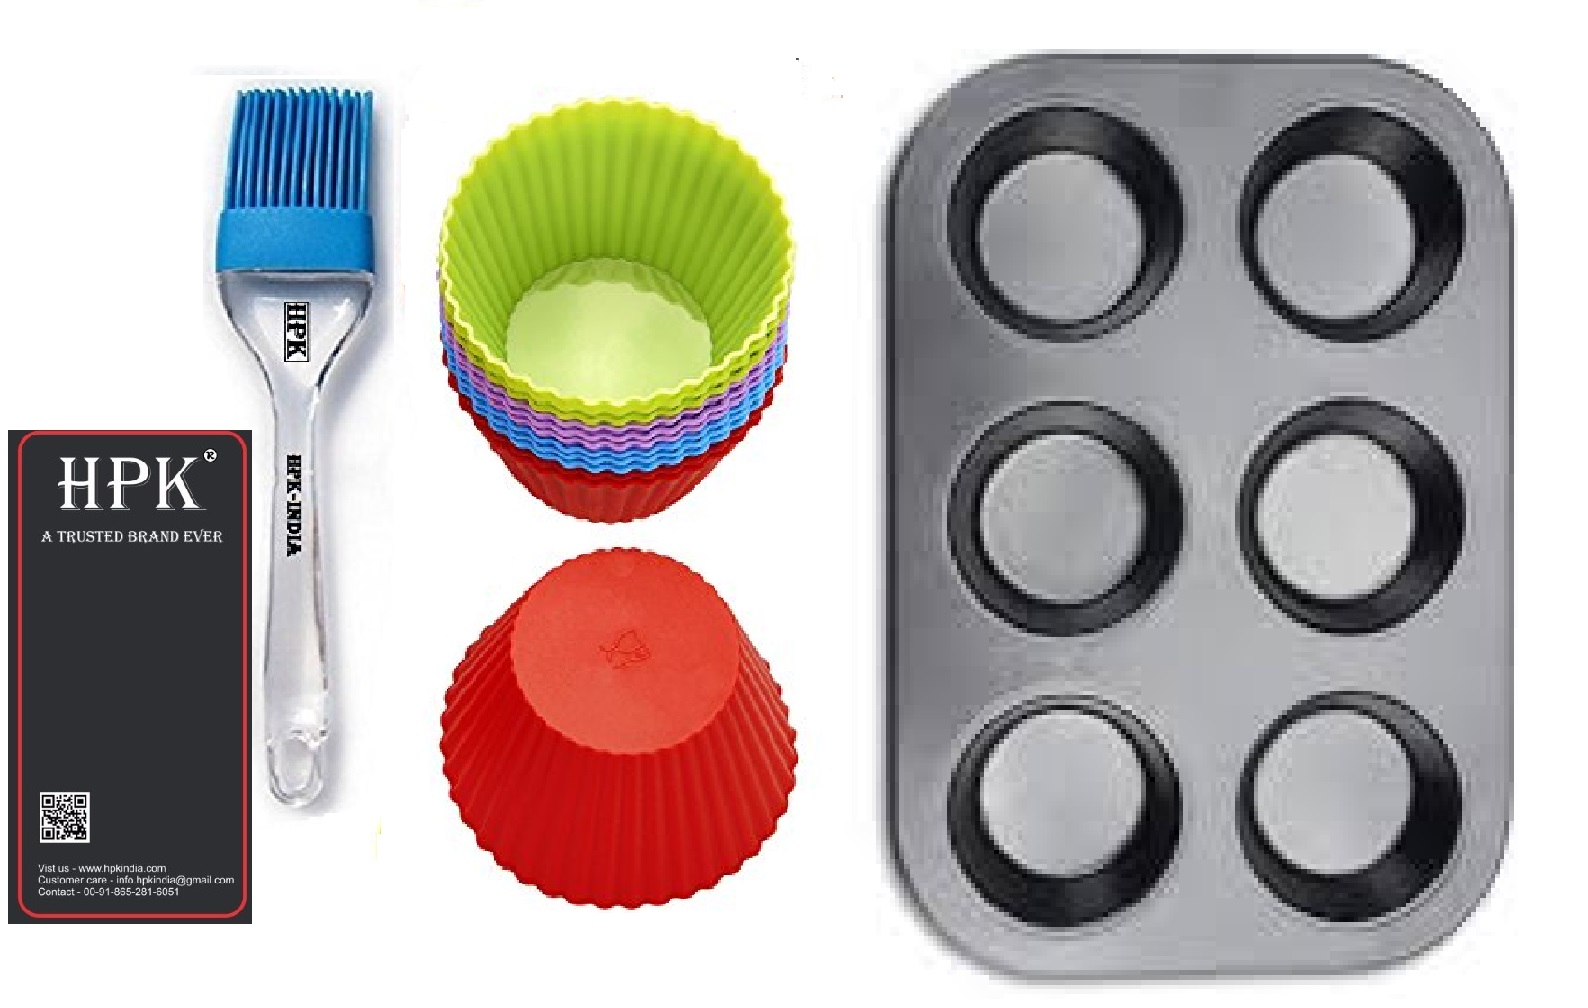 hpk-brsuh round molds muffin tray  round  molds Set